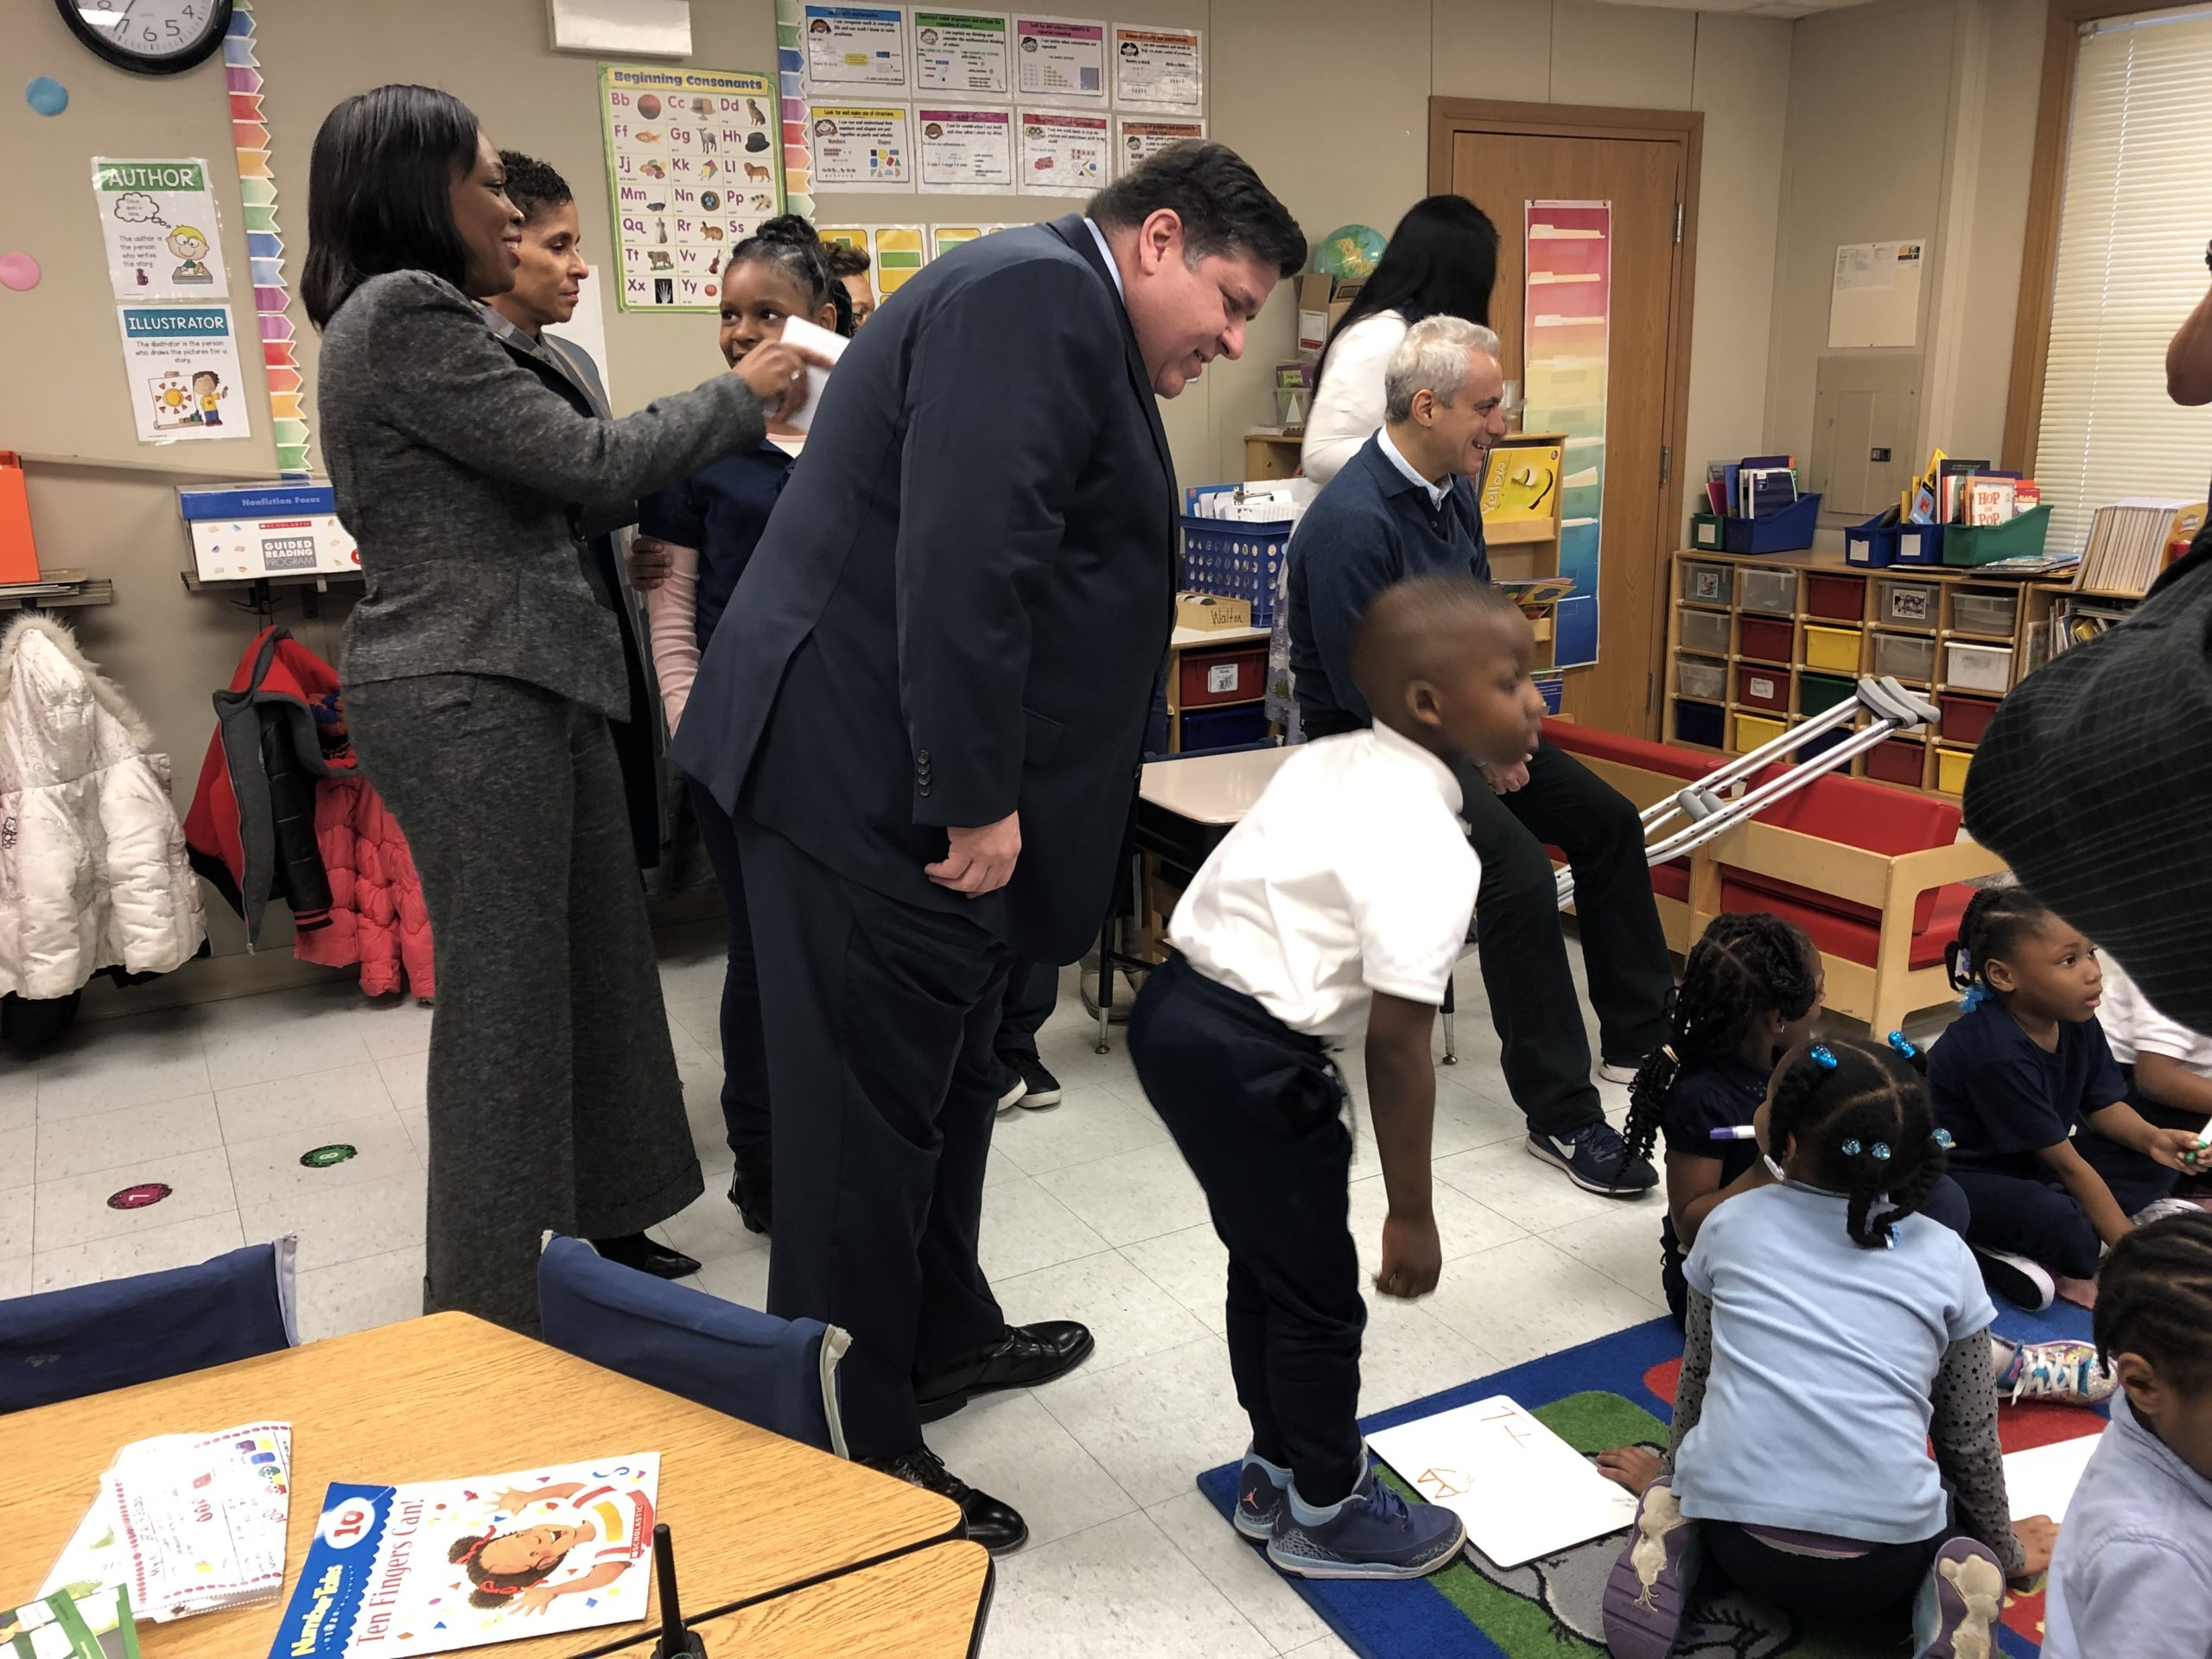 Illinois Gov. J.B. Pritzker visited a Chicago school last spring to tout additional investments in early education.